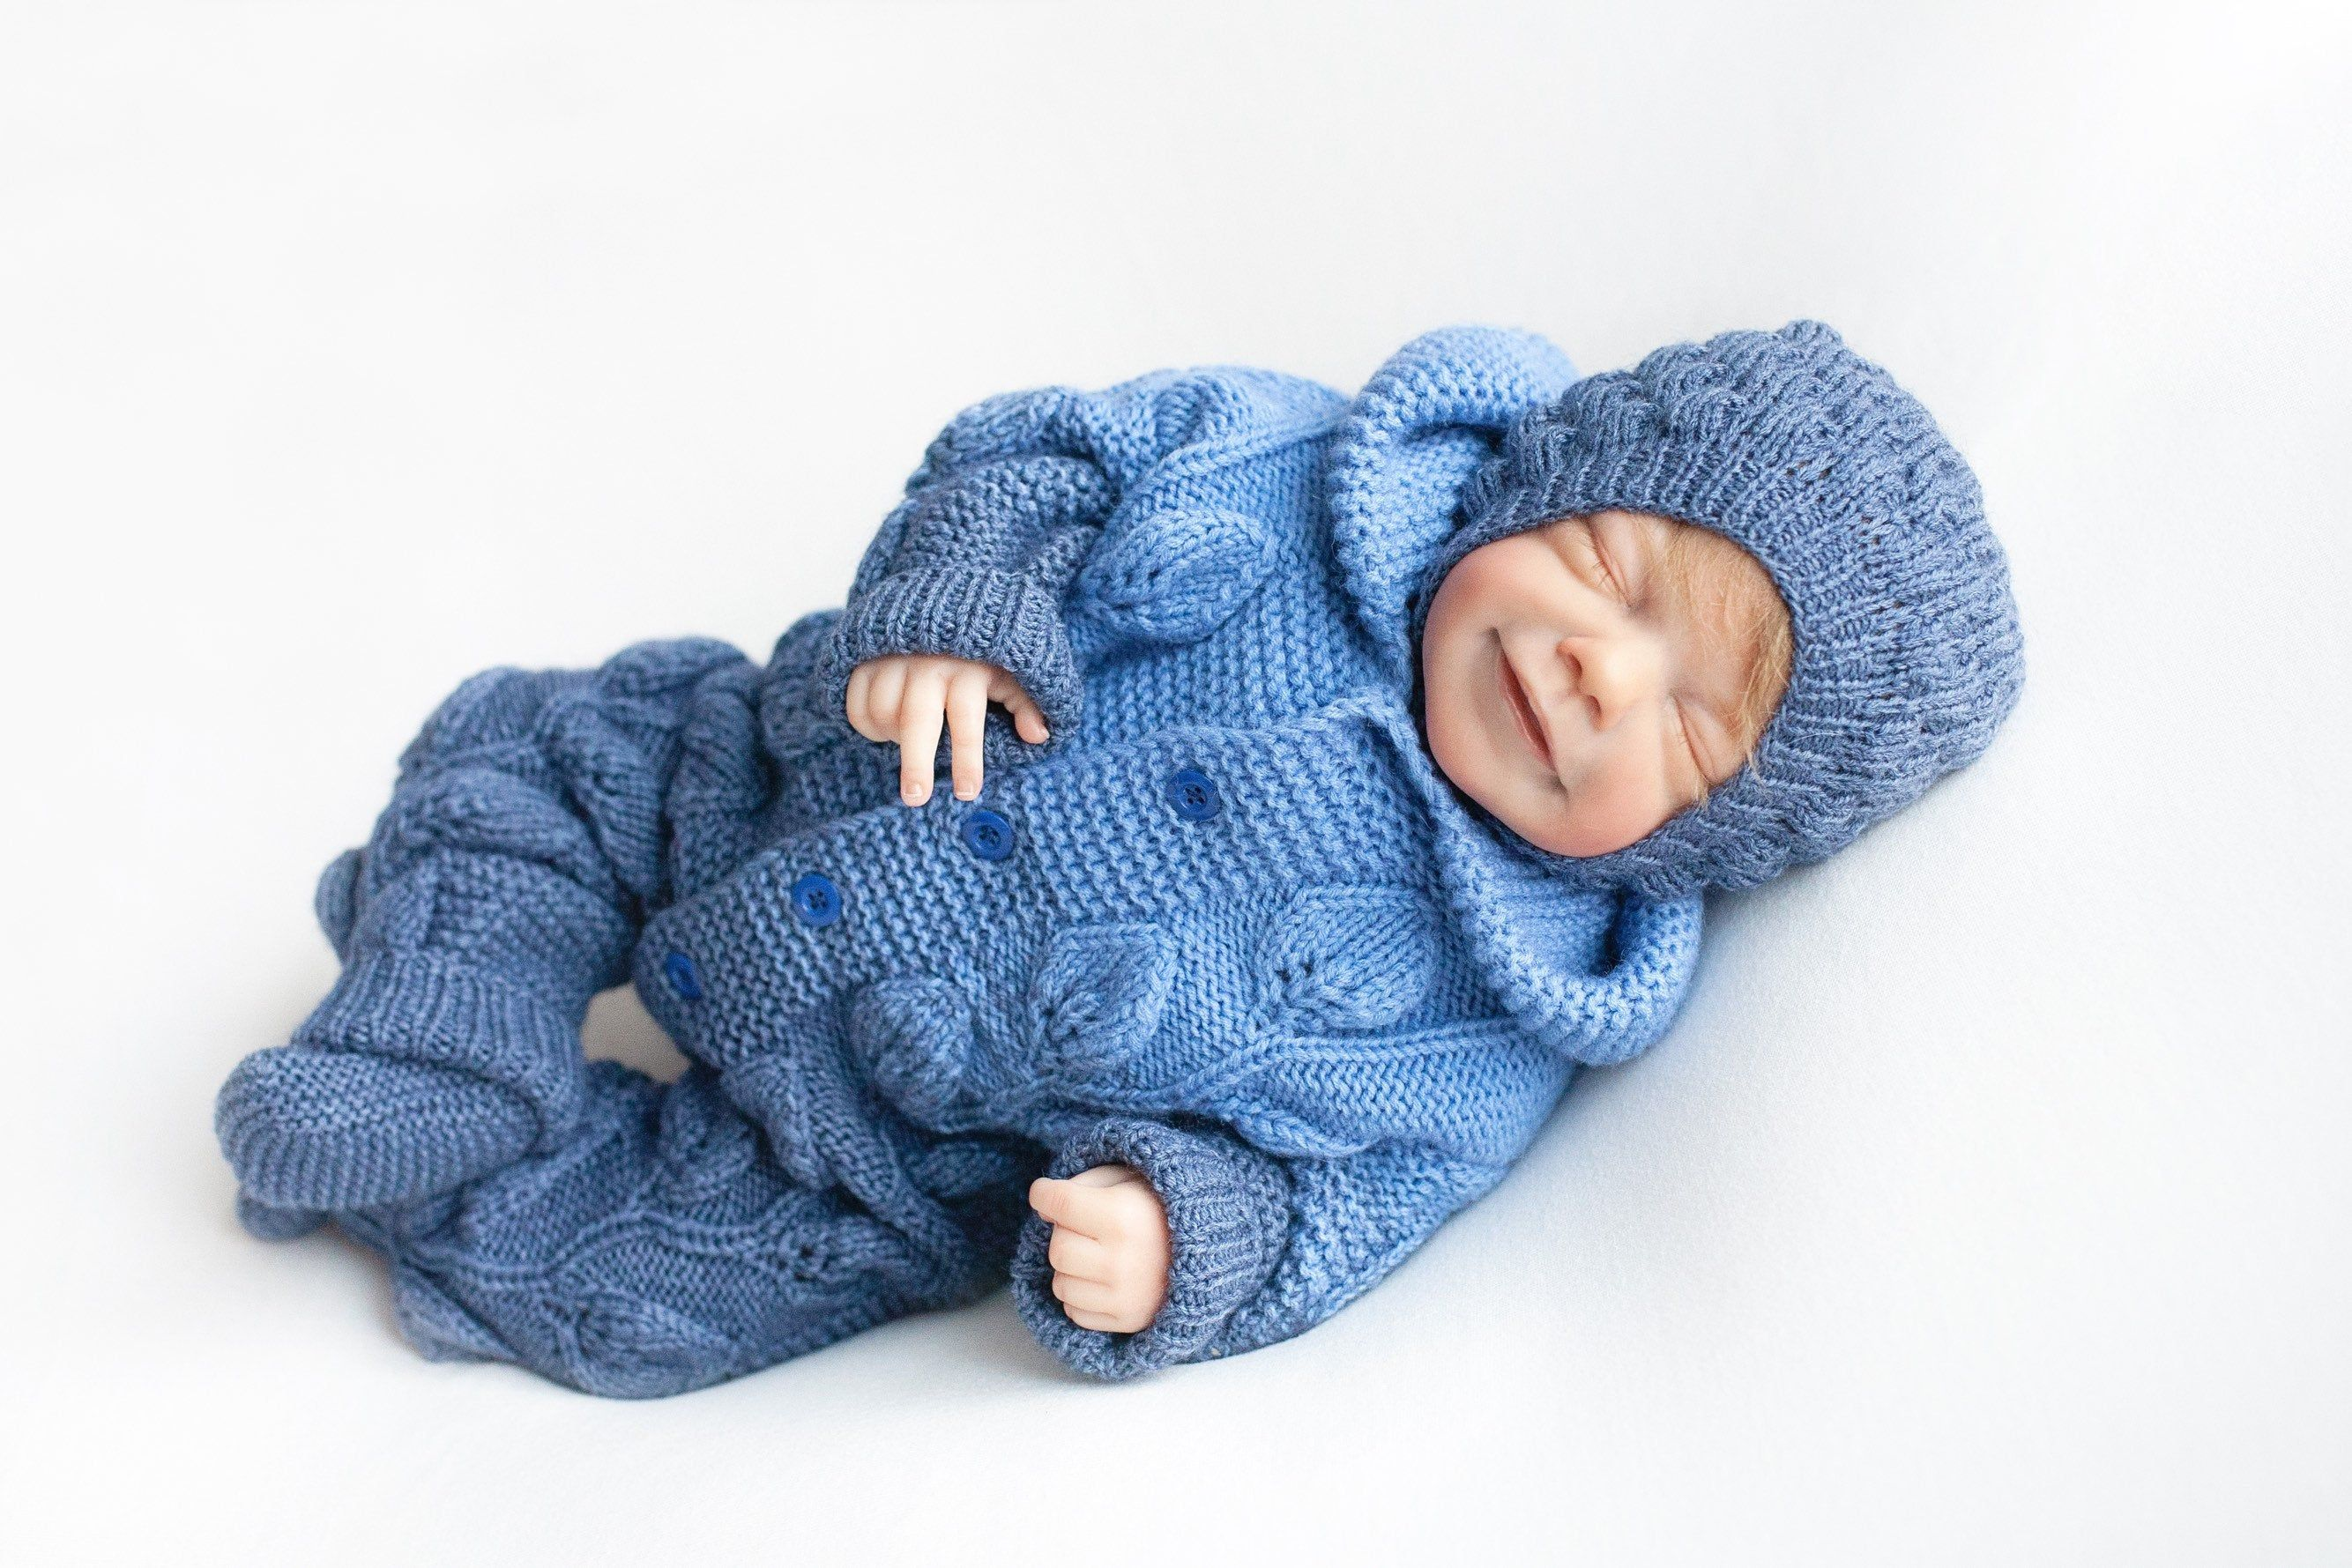 Knitted baby boy clothes Baby boy Coming home outfit Hand knitted baby clothes Newborn knitted outfits Knitted baby